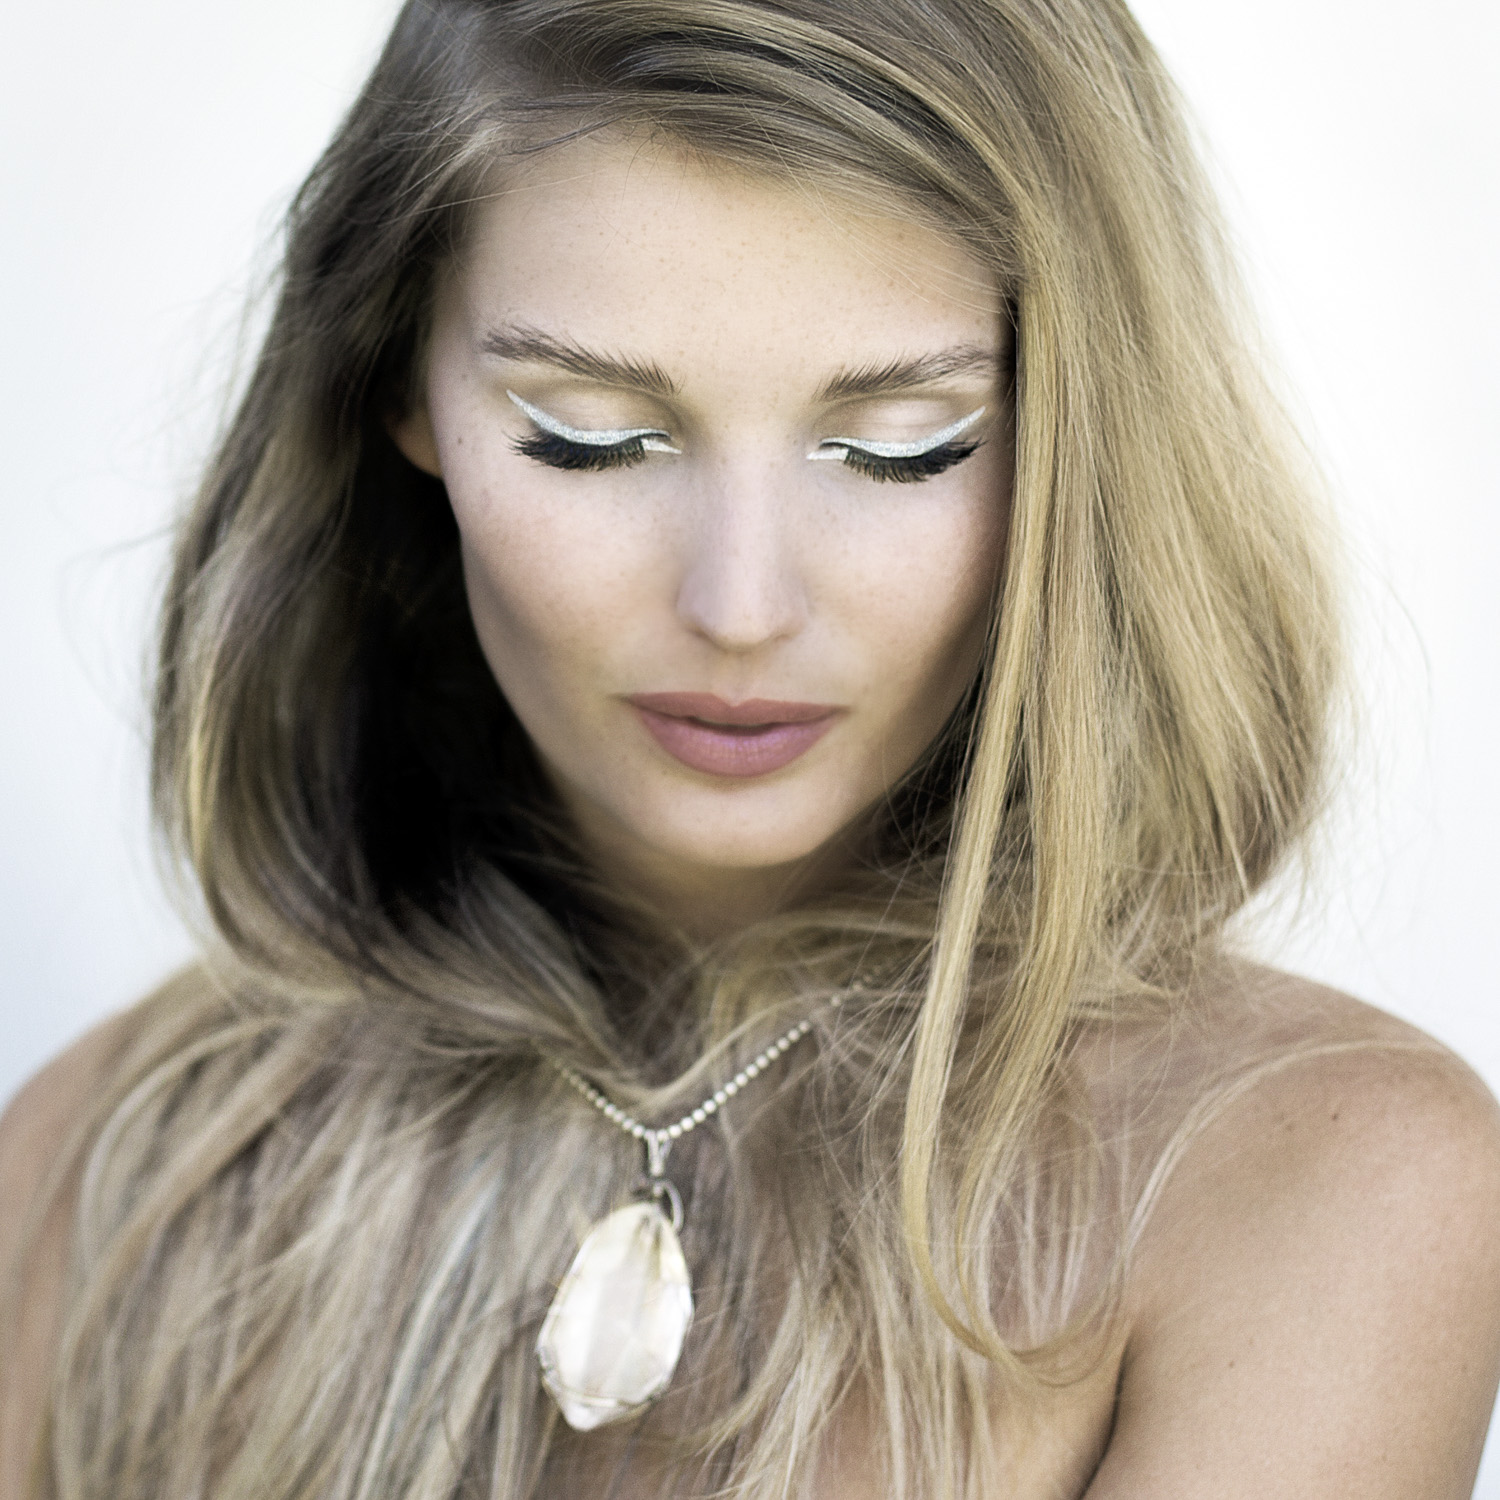 Cait provan with crystal and silver liner beauty shoot